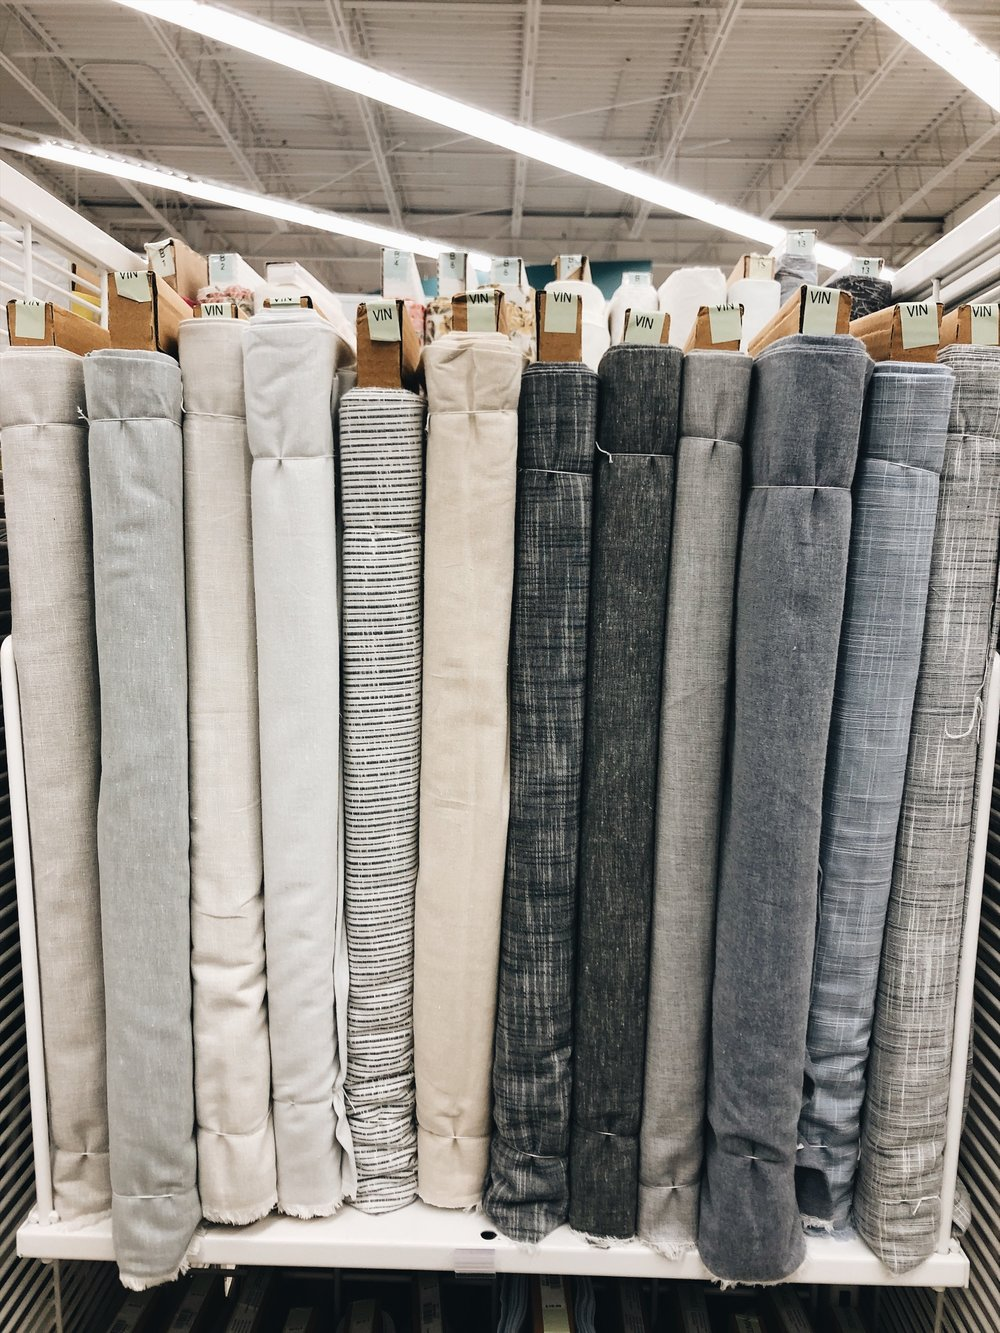 Fabric: A linen cotton blend to be exact & the DIY project I have planned.